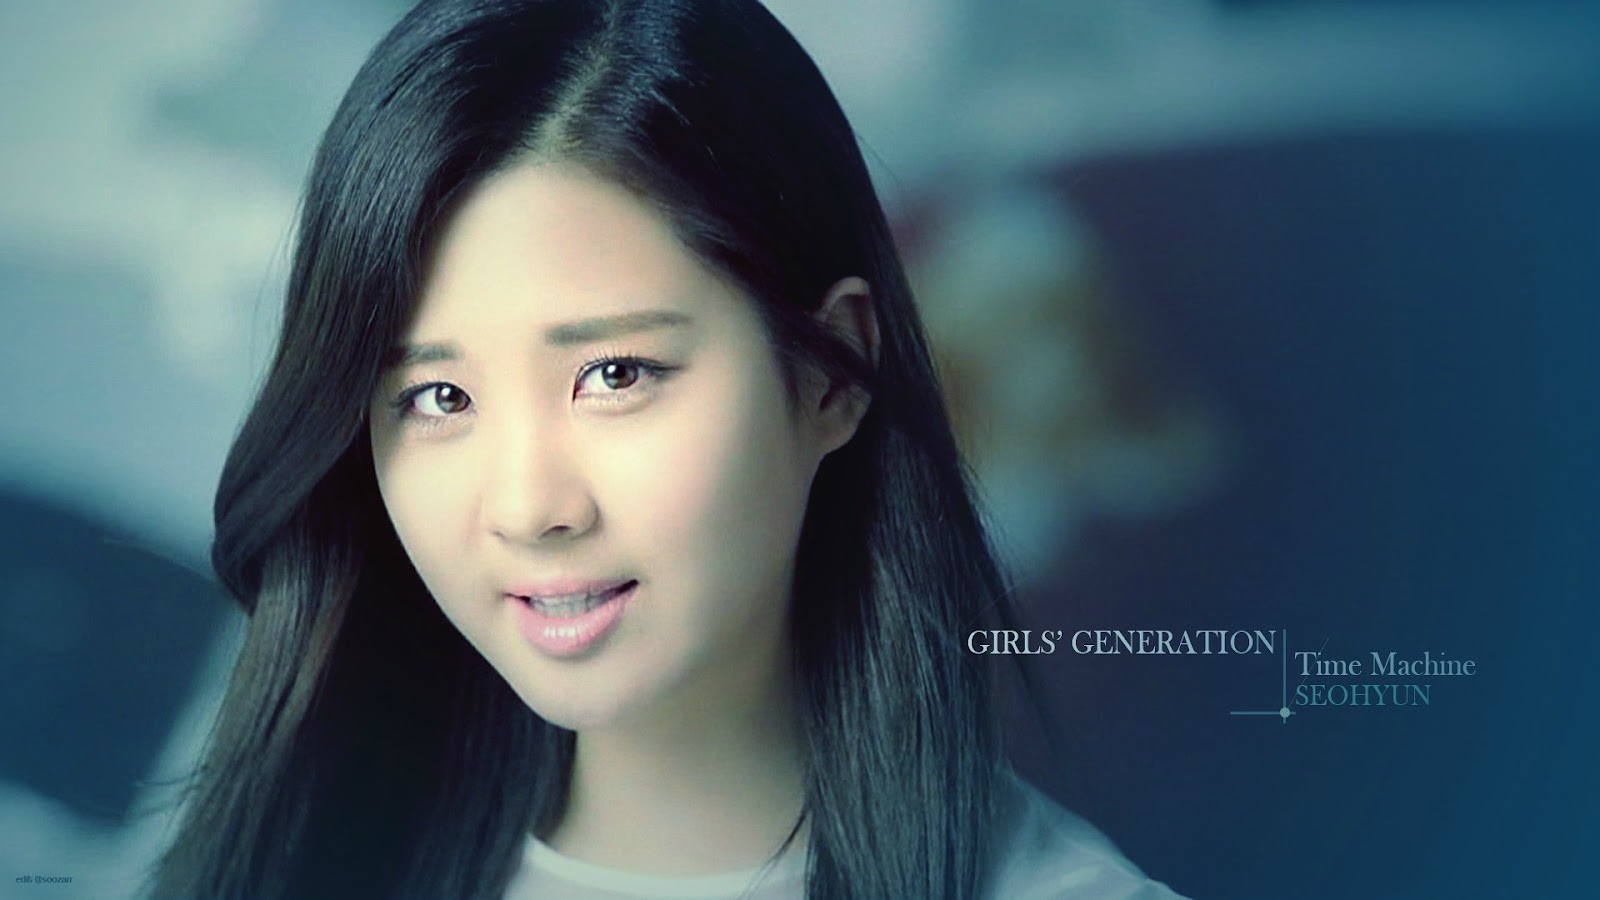 http://1.bp.blogspot.com/-OQW4mgCqI-E/UBvq0mLbDRI/AAAAAAAAJq0/0yNLAVukJS4/s1600/SNSD-SeoHyun-Time-Machine-Wallpaper-as-generation-snsd-30039019-1920-1080.jpg